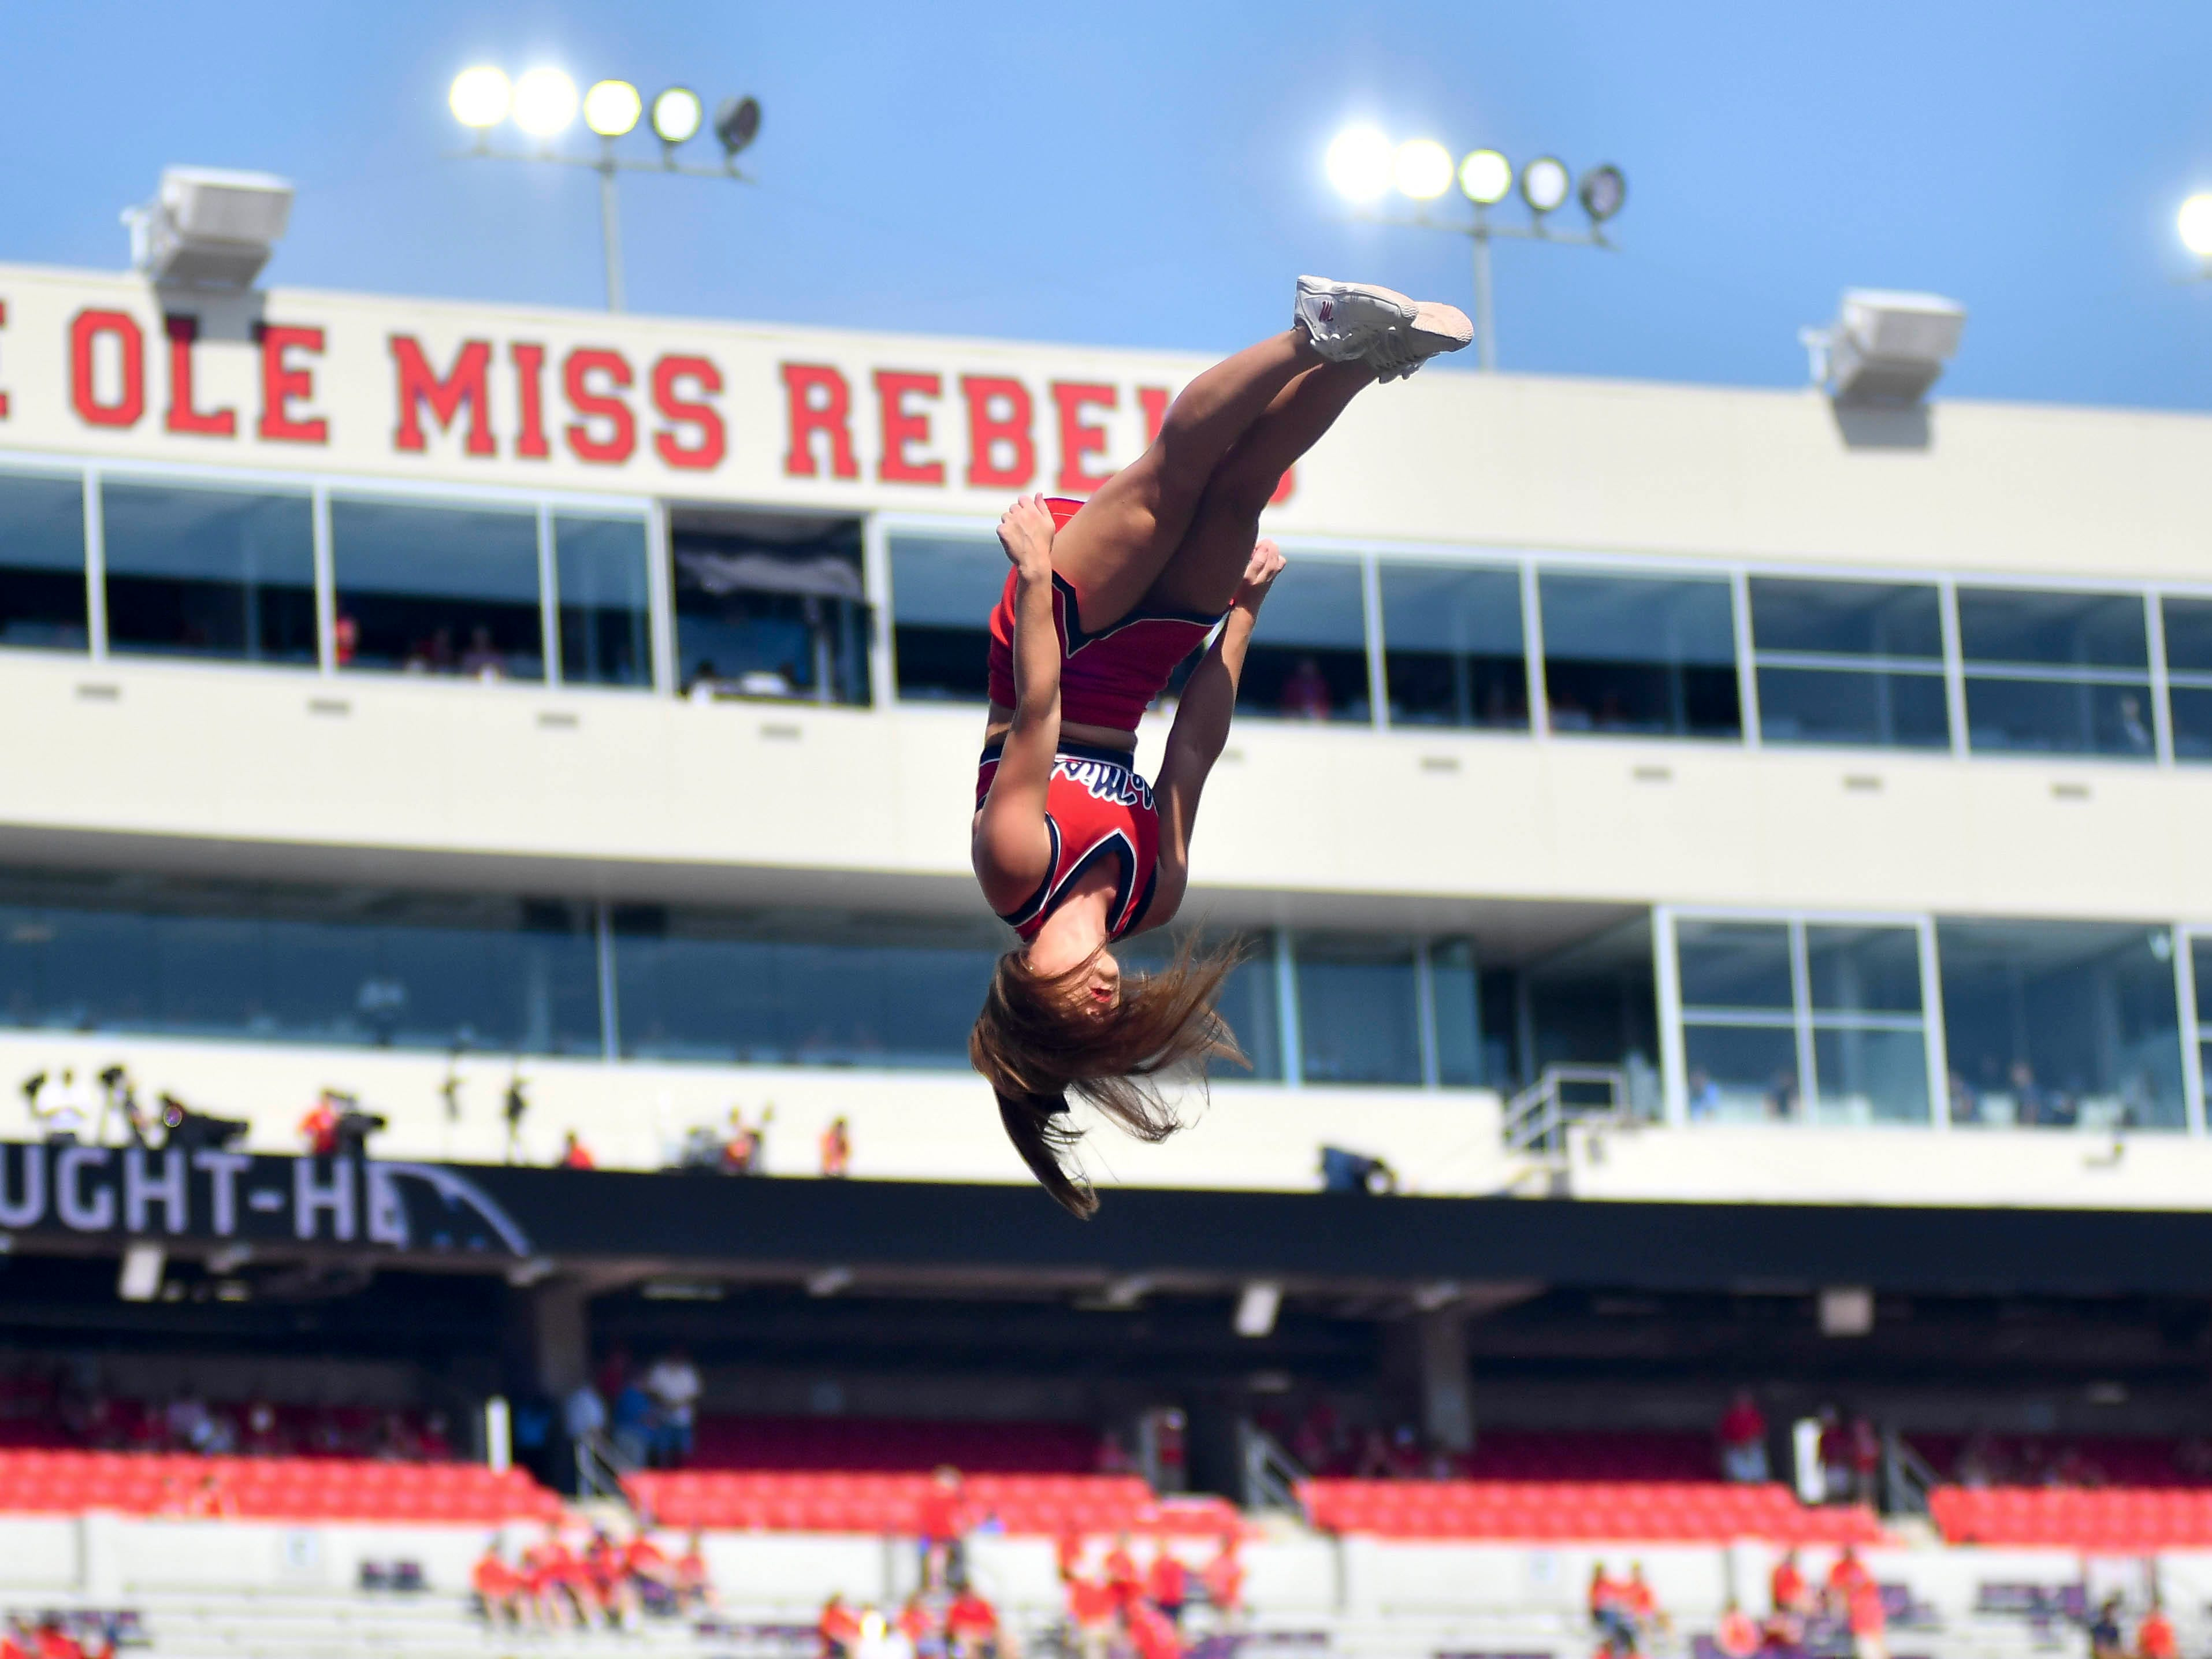 An Ole Miss cheerleader performs before the game against Kent State at Vaught-Hemingway Stadium.